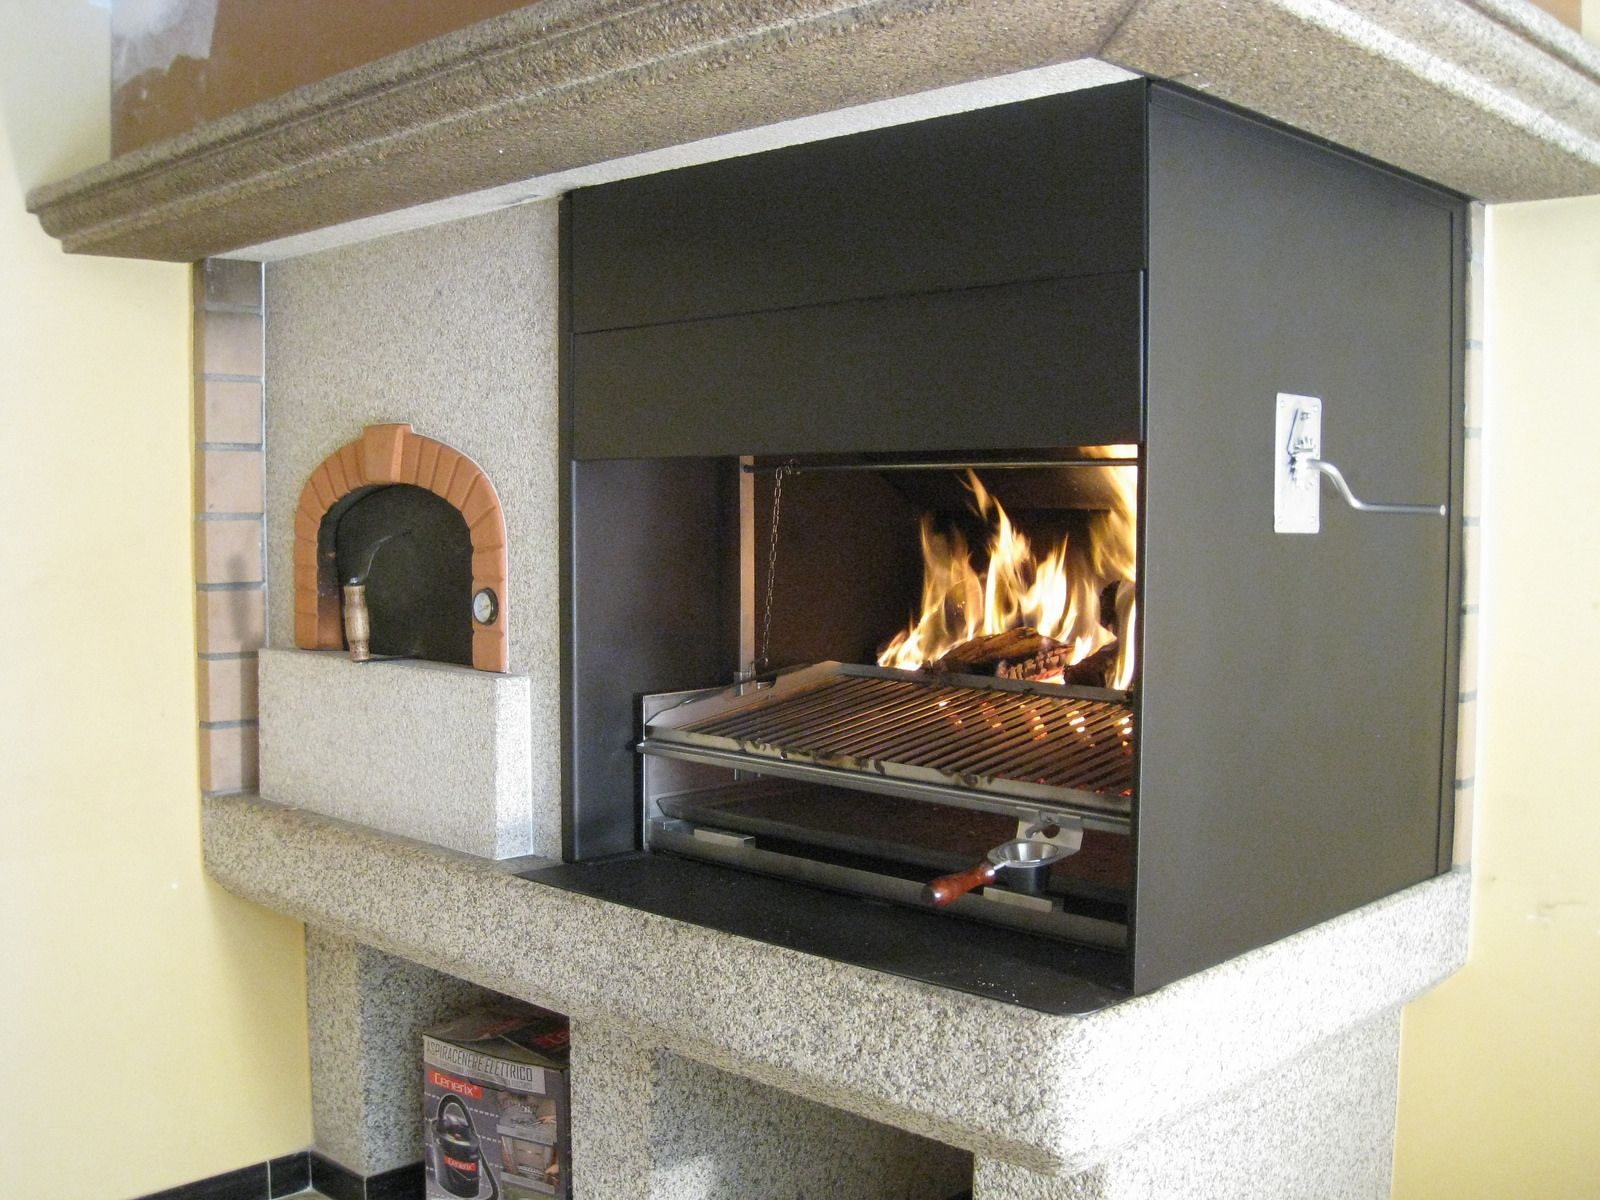 Horno punto alfapizza barbacoa kitchens and fire pit grill - Barbacoas de obra baratas ...